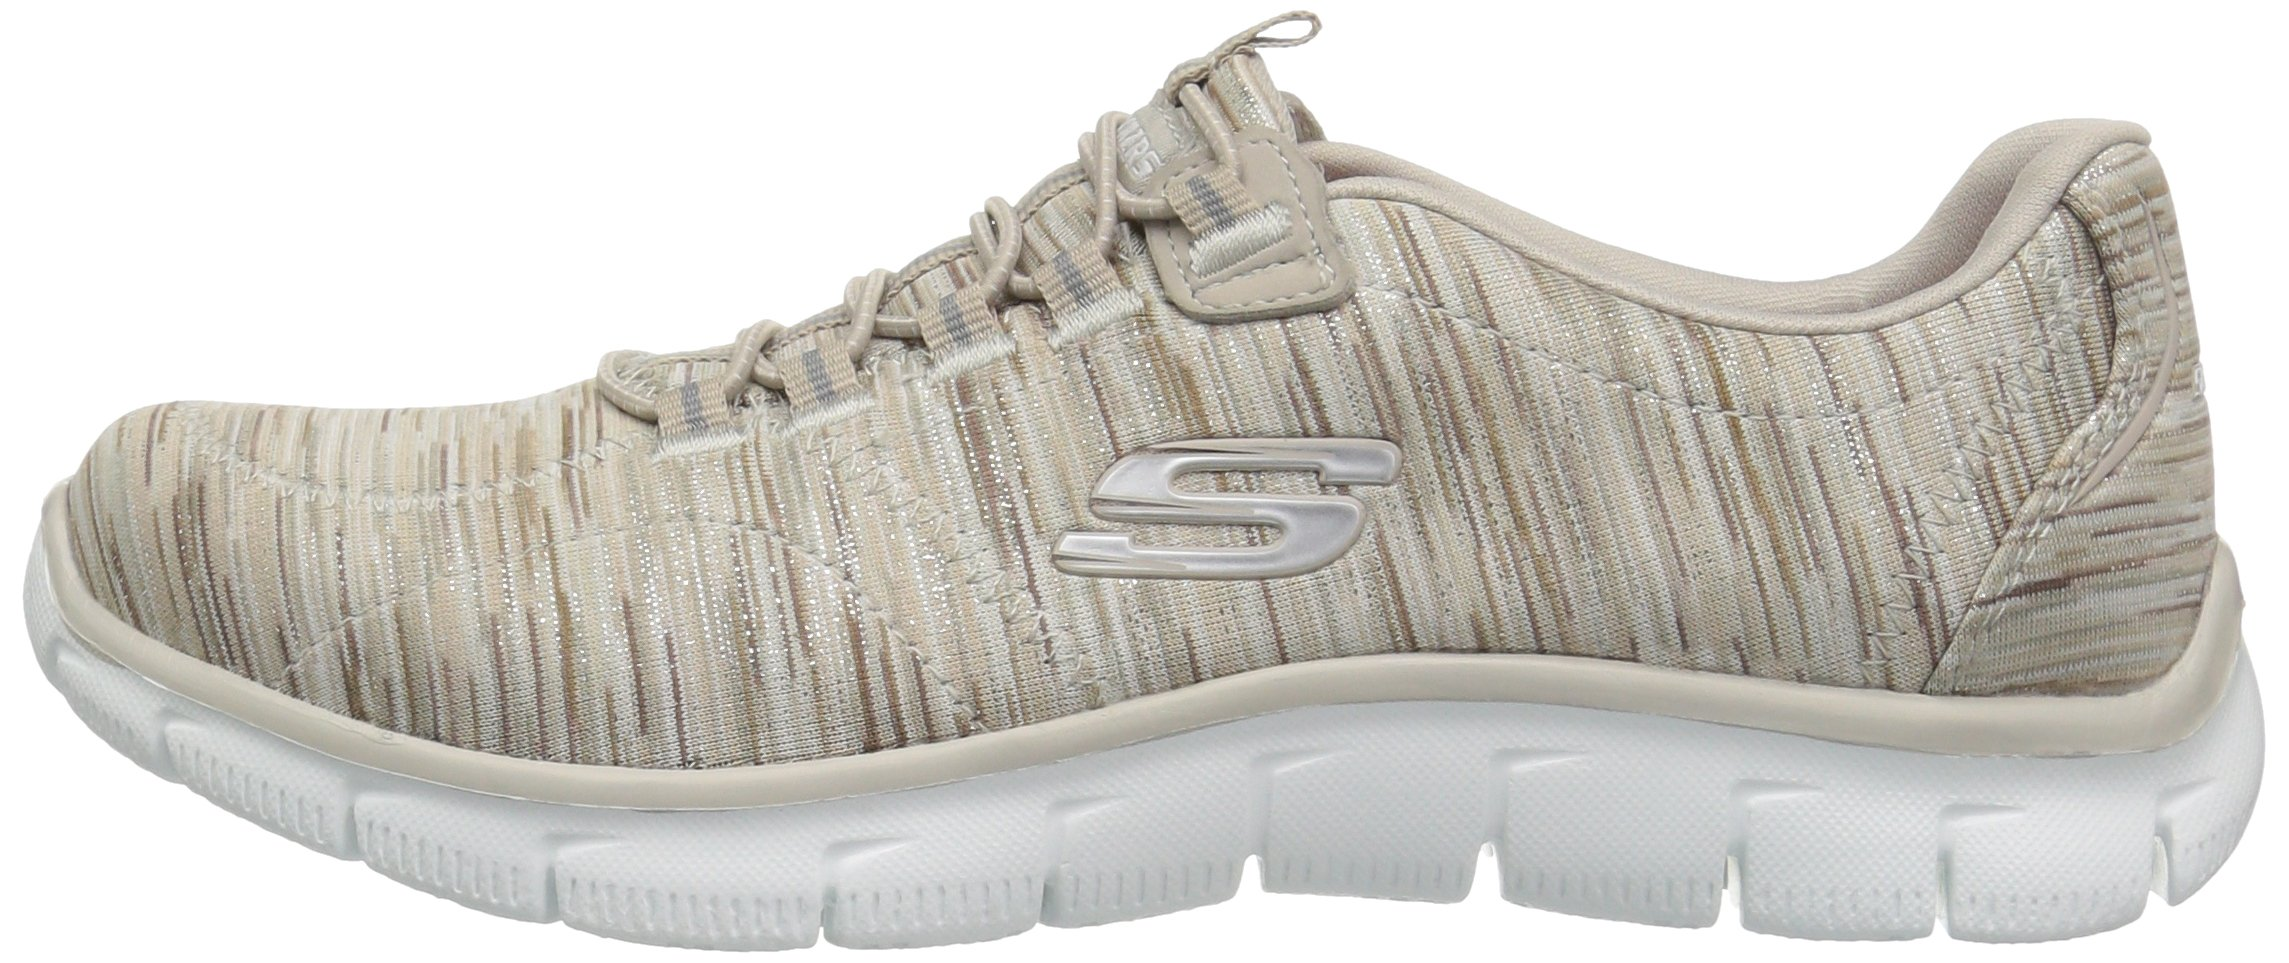 Skechers Women's Empire Game On Memory Foam Sneakers Shoes, Taupe, 6 B(M) US by Skechers (Image #5)